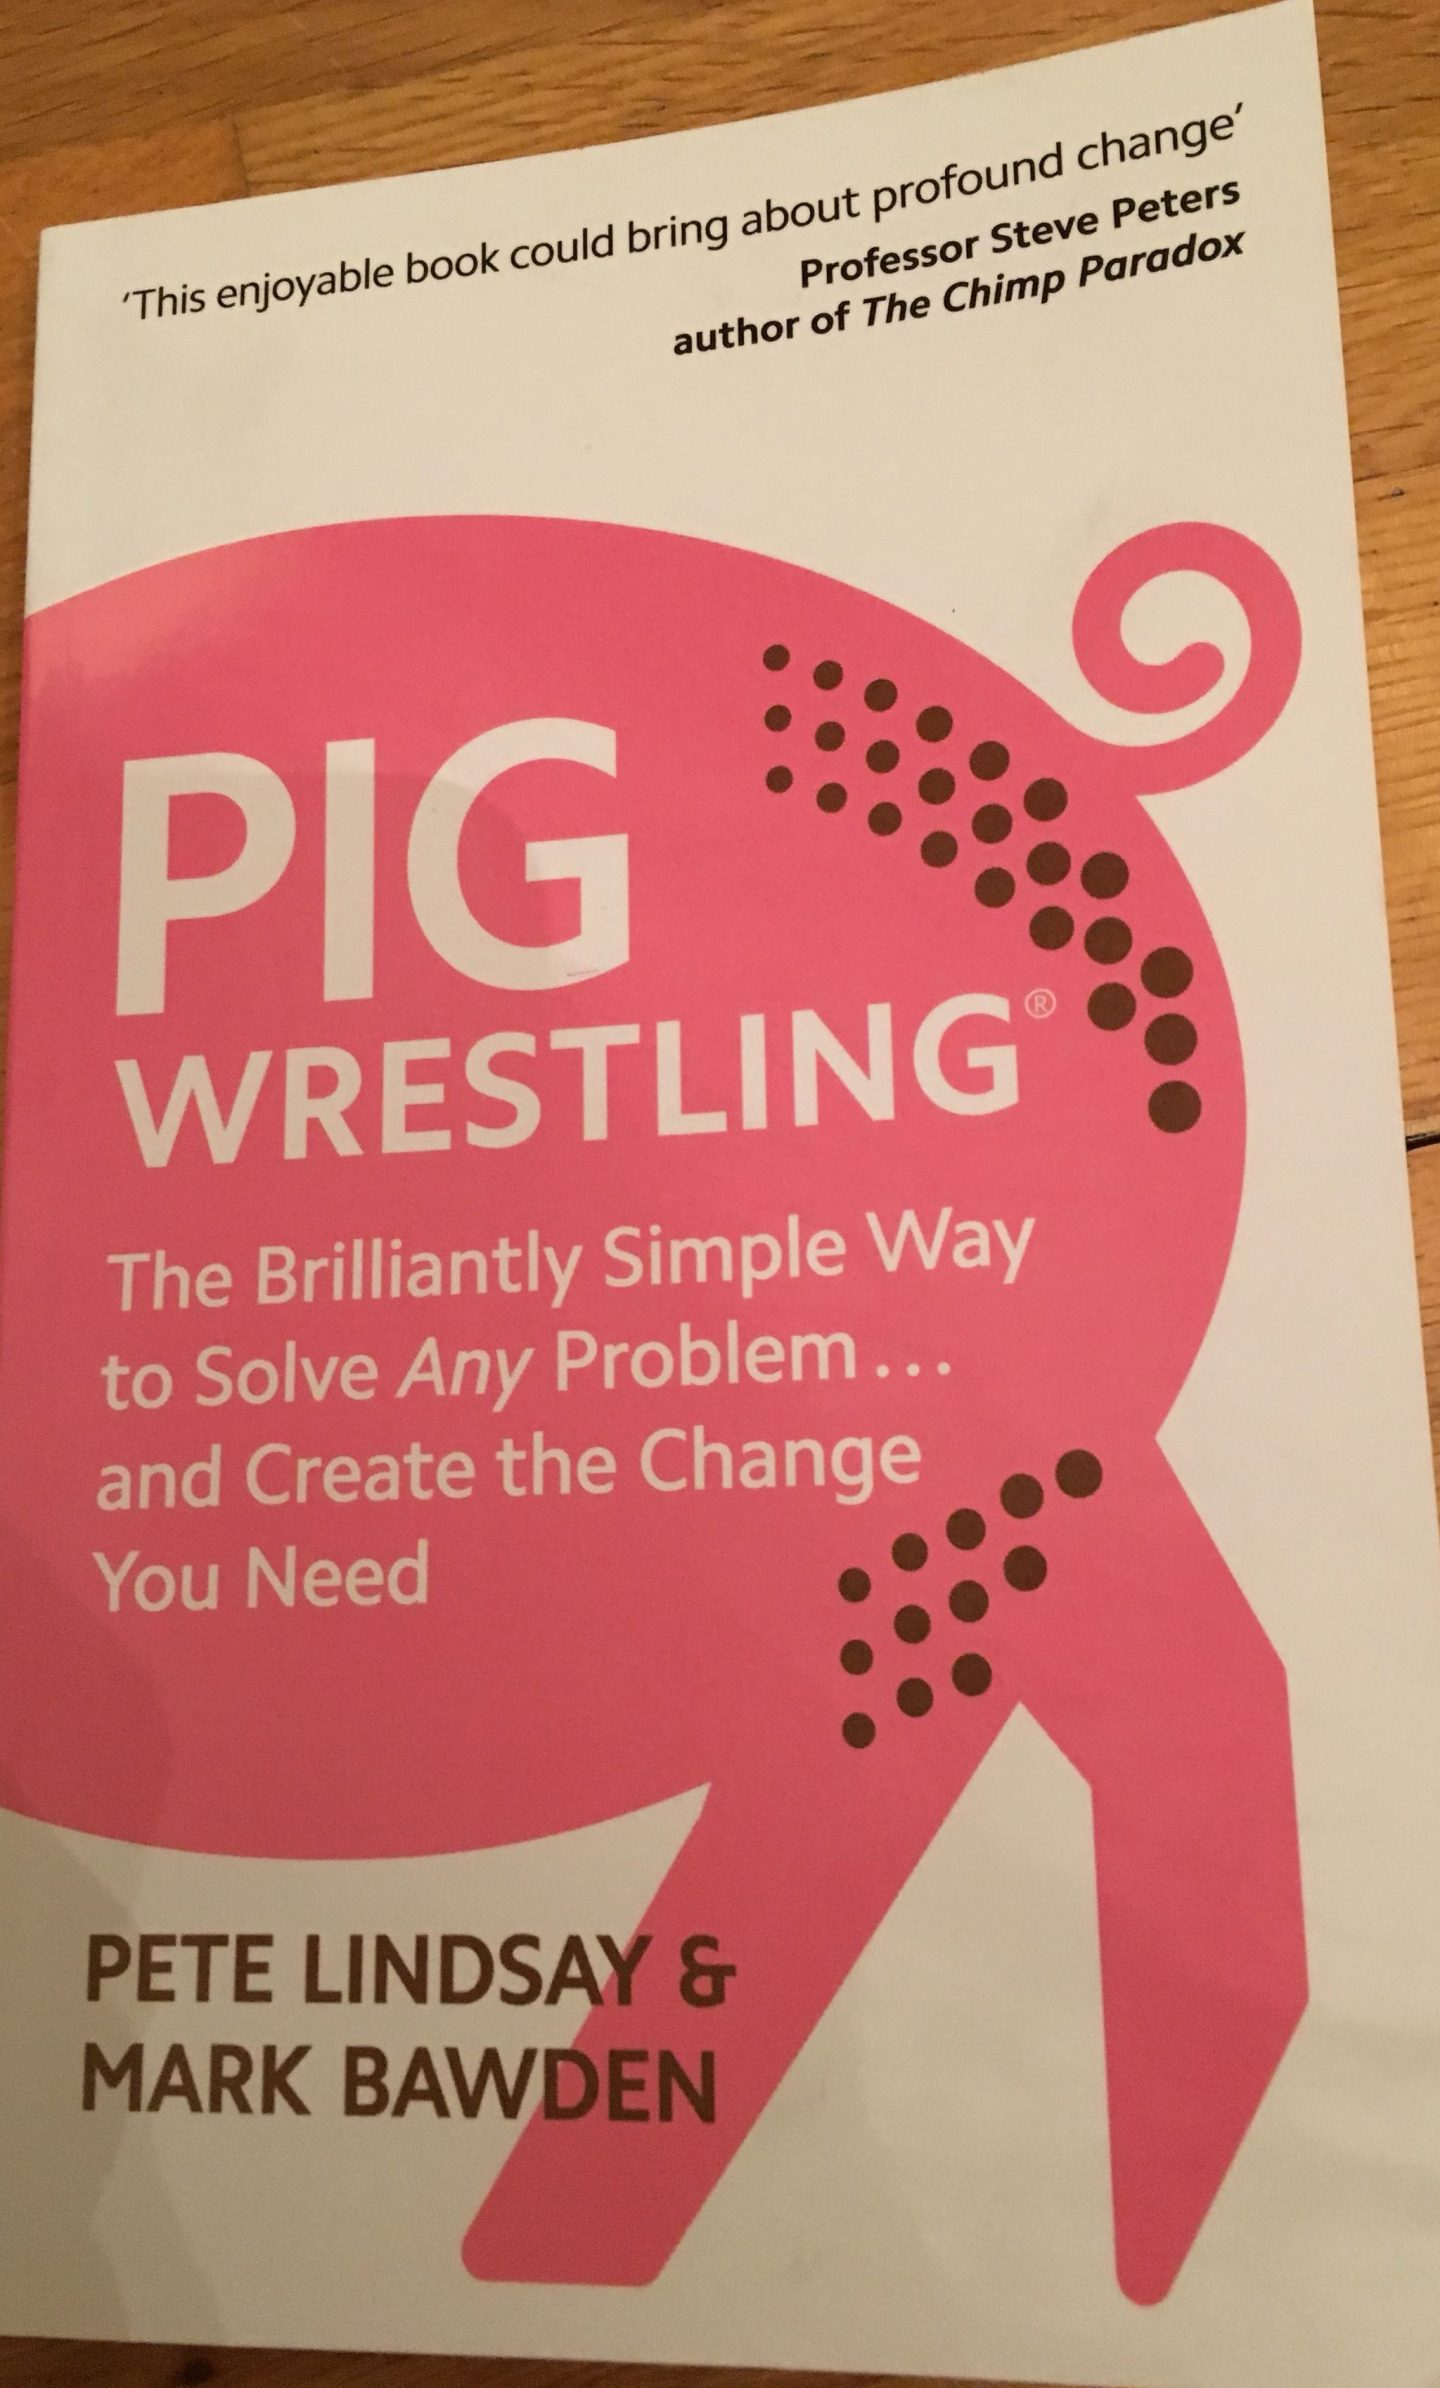 A Review of 'Pig Wrestling'